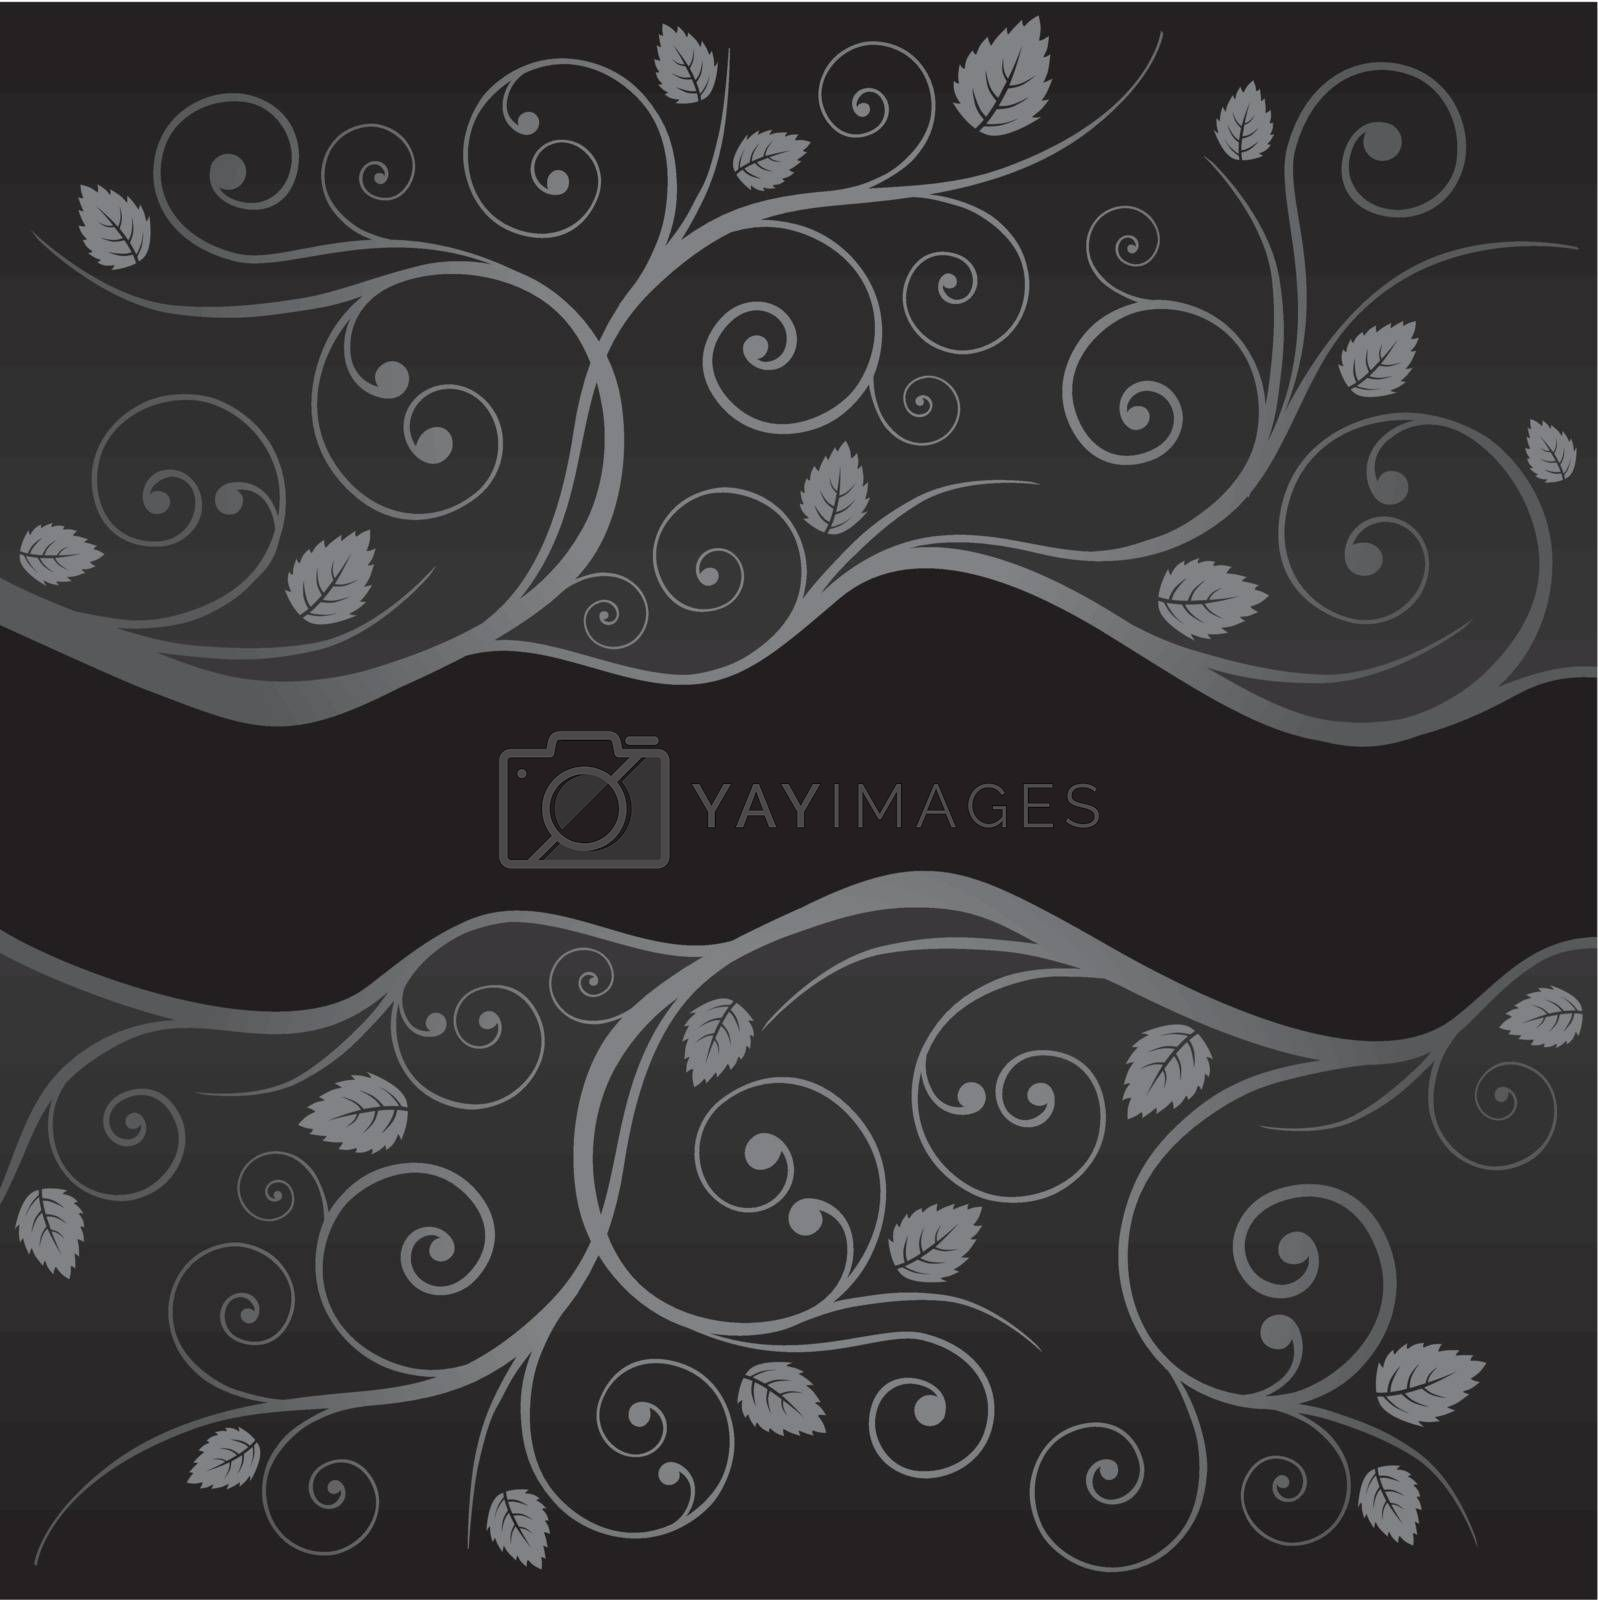 Luxury black and silver leaves and swirls borders on black background. This image is a vector illustration.